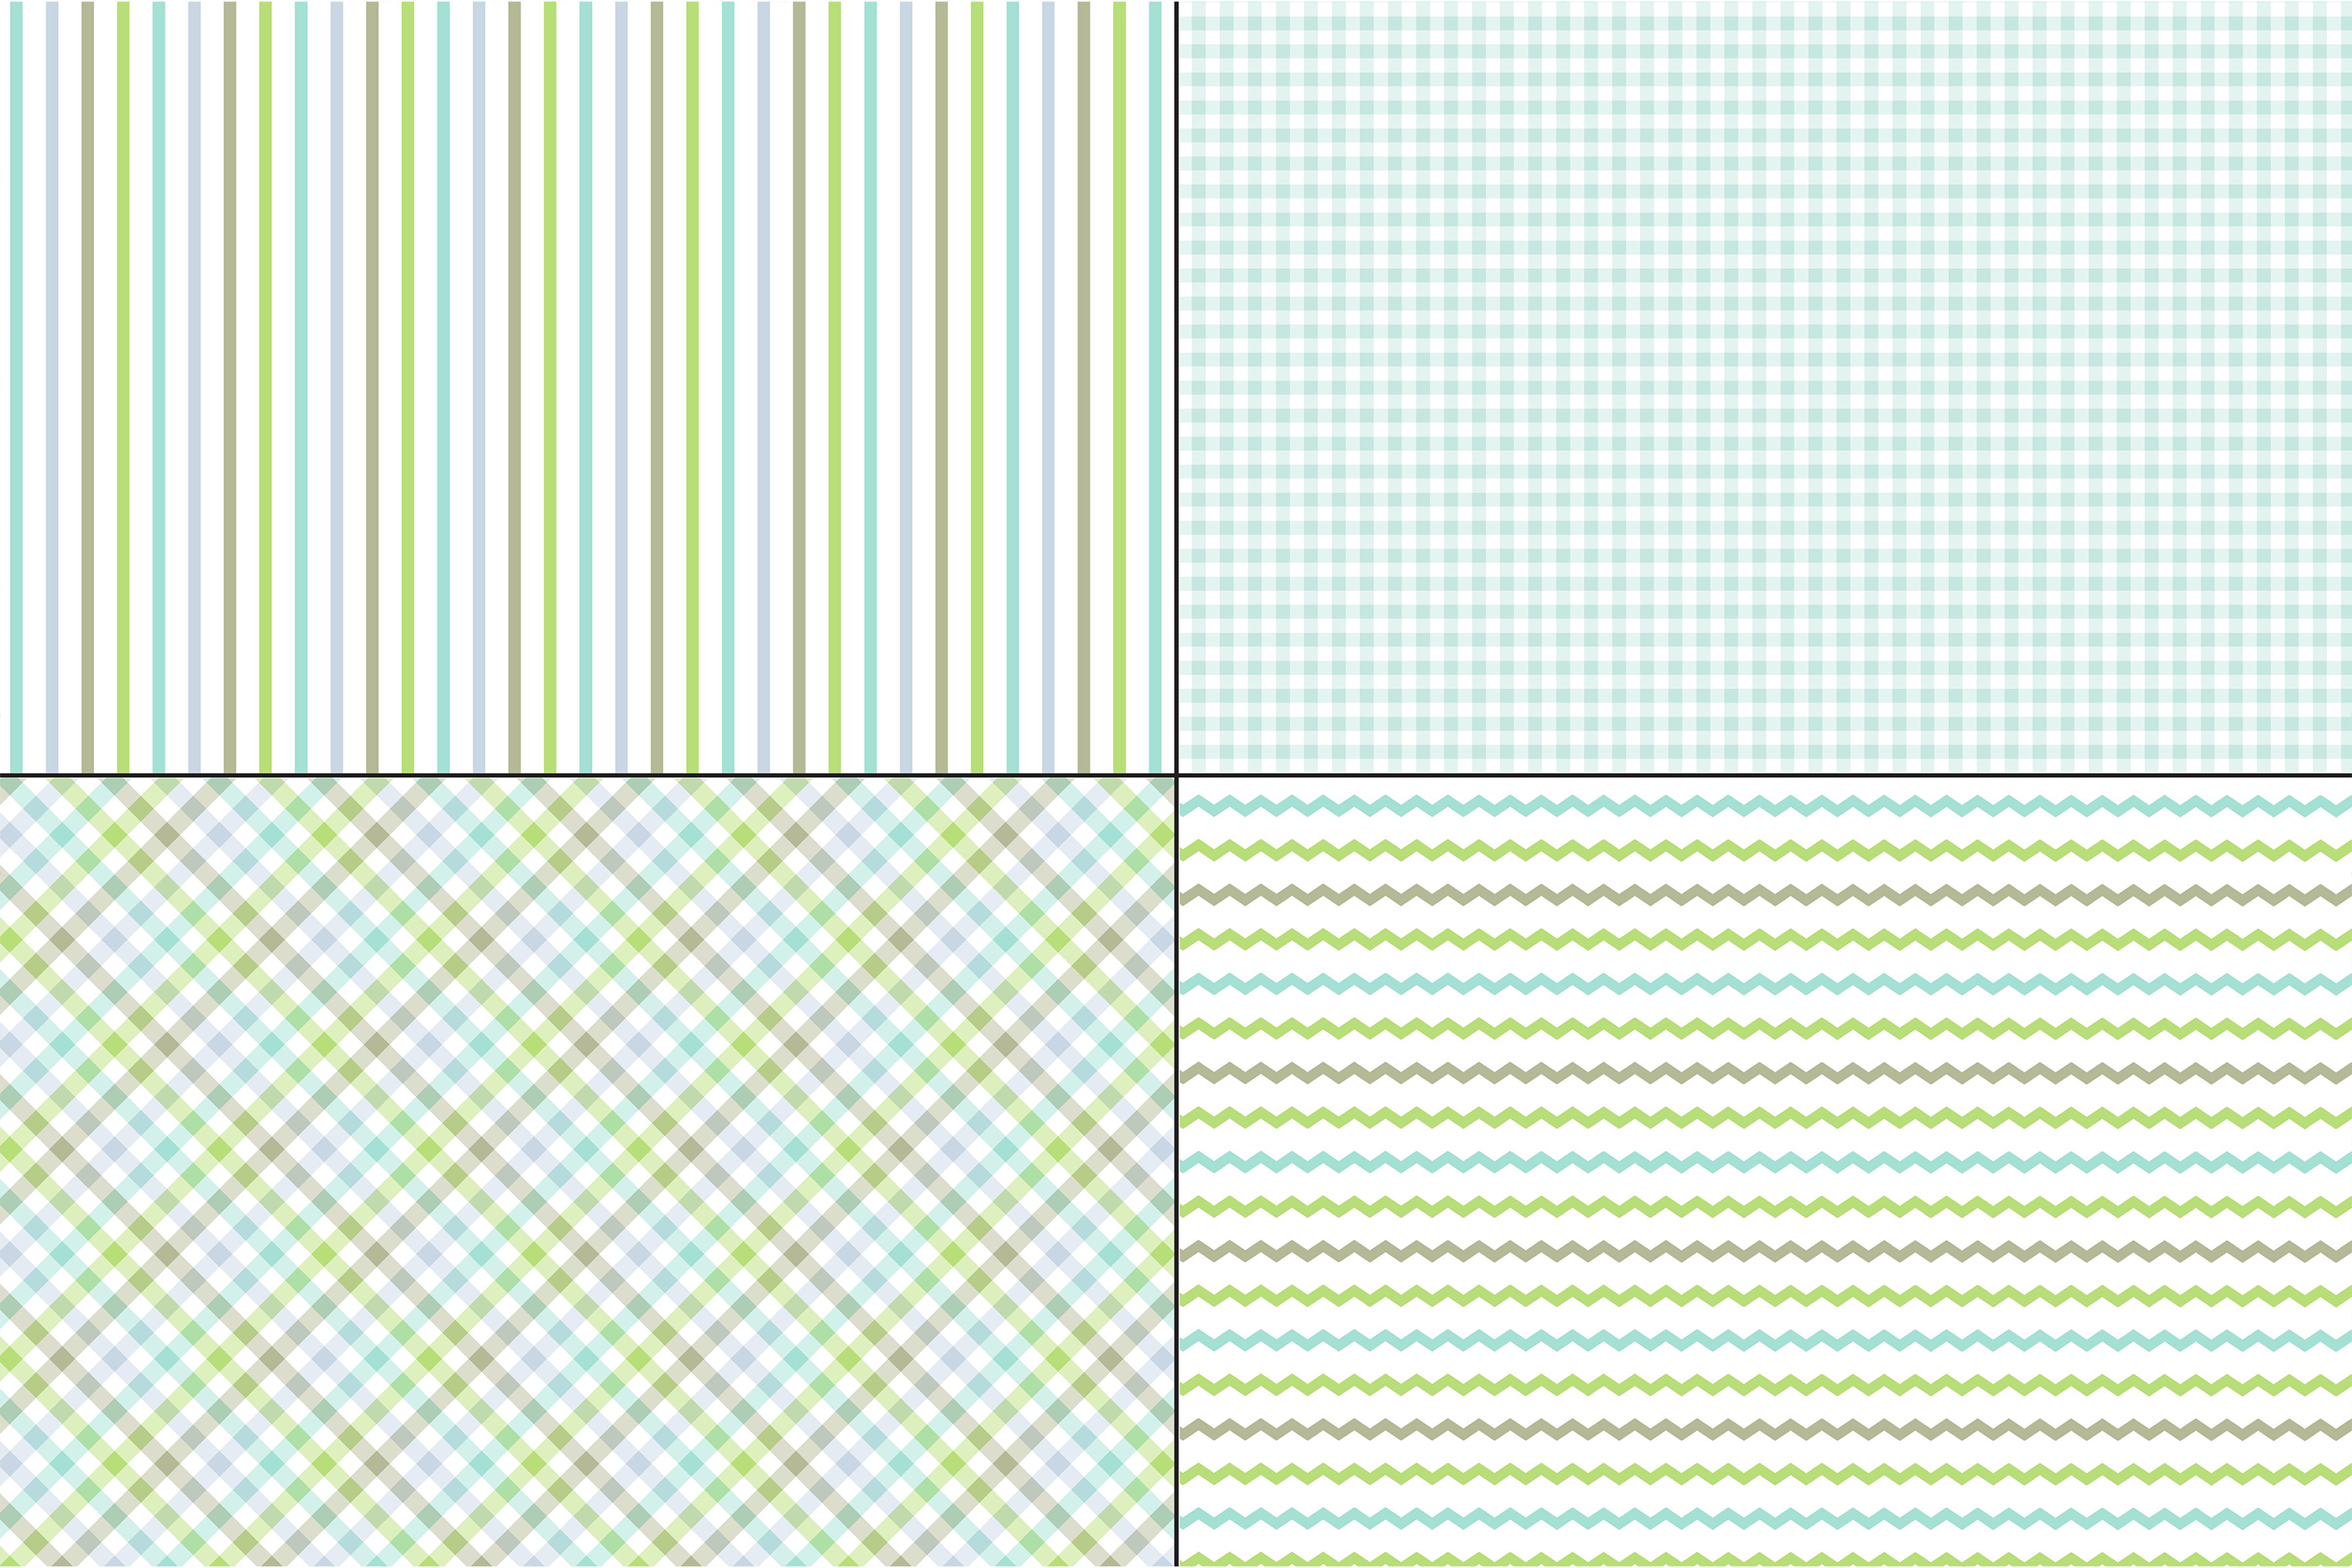 Blue Green Stripes & Plaids example image 2